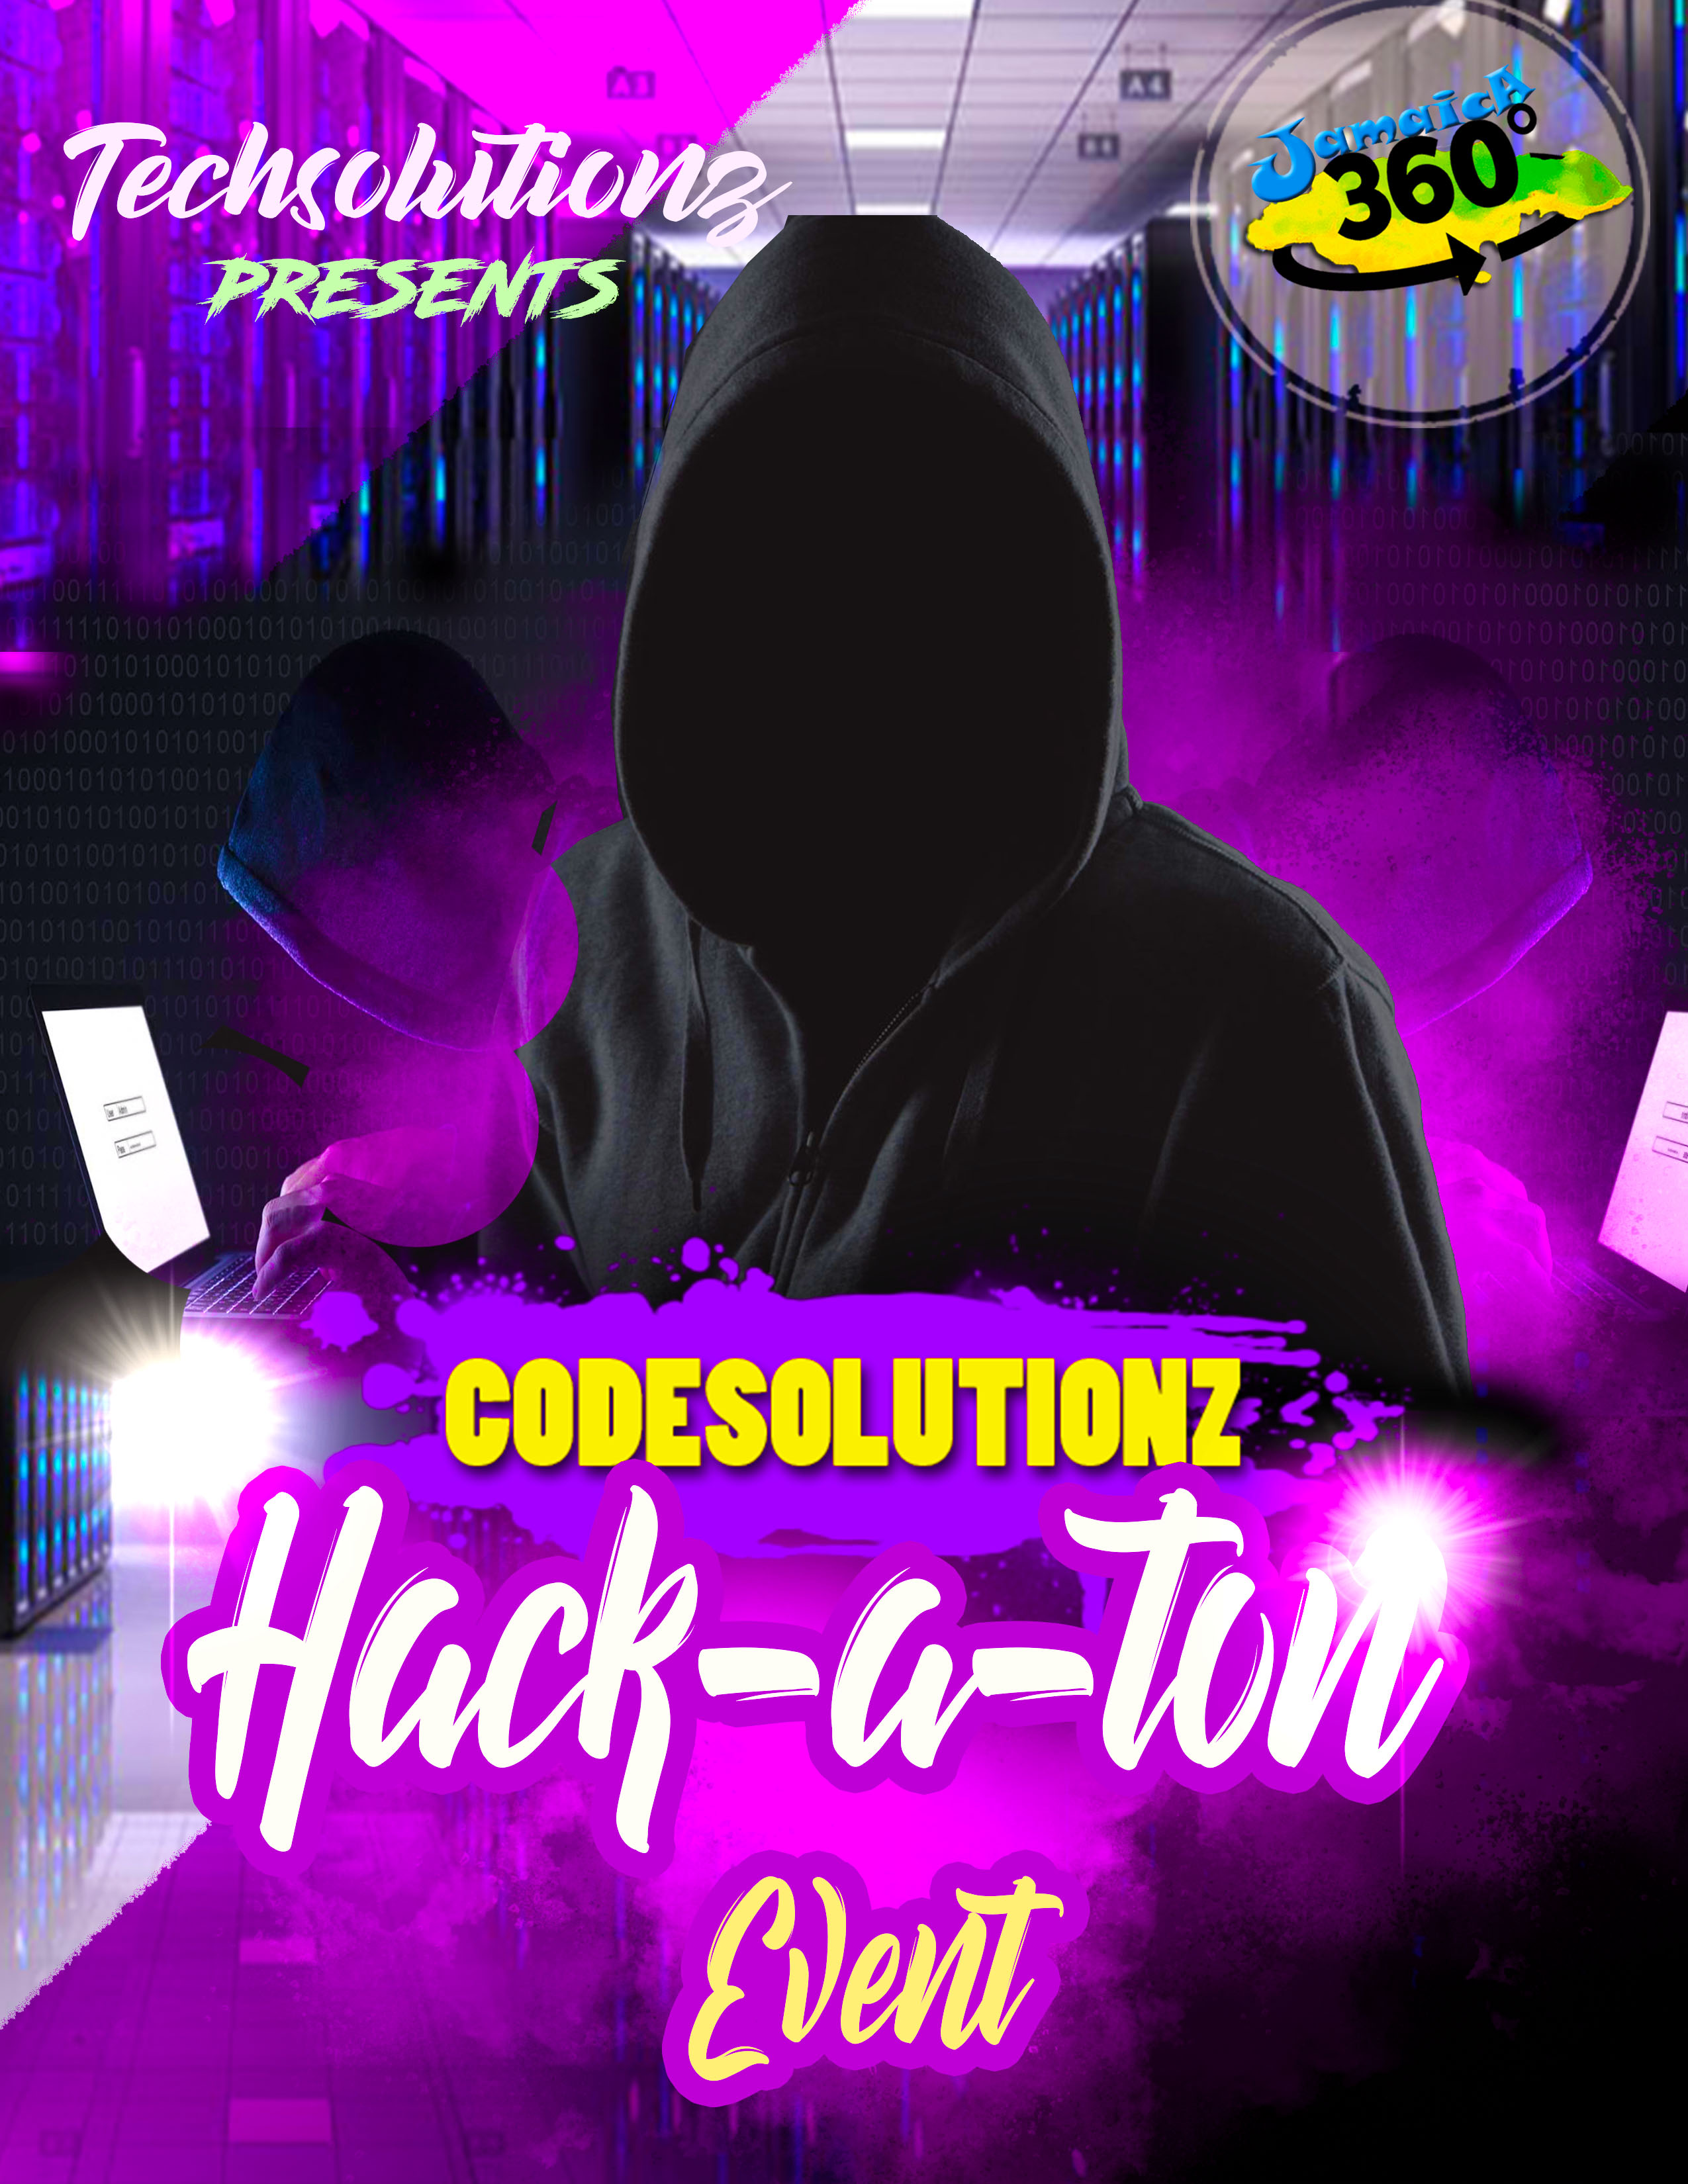 codesolutionz poster